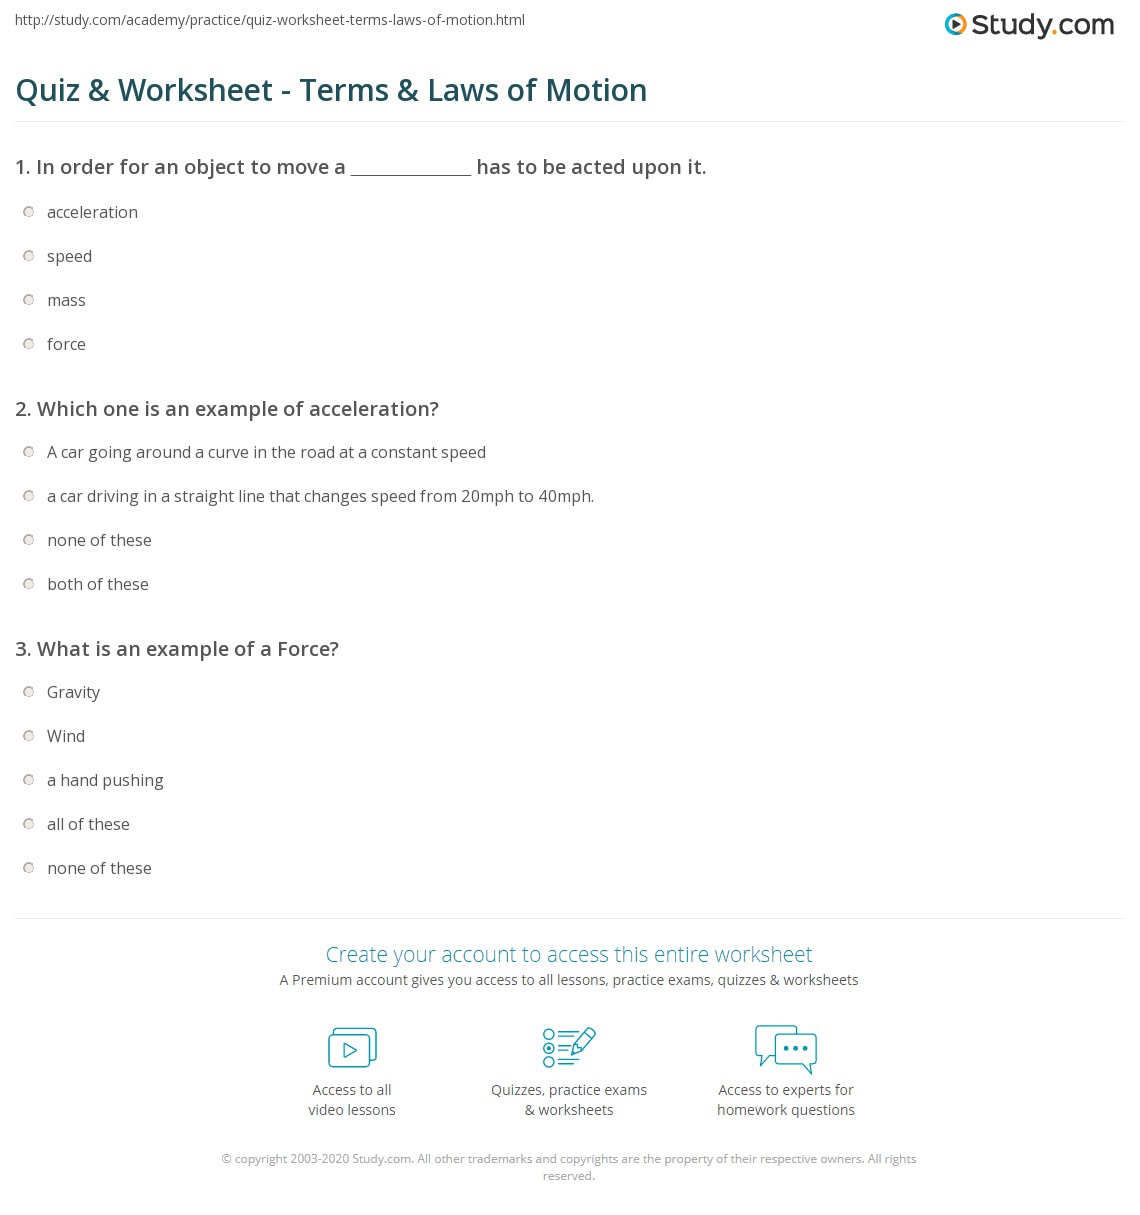 worksheet Laws Of Motion Worksheet quiz worksheet terms laws of motion study com print what is definition worksheet